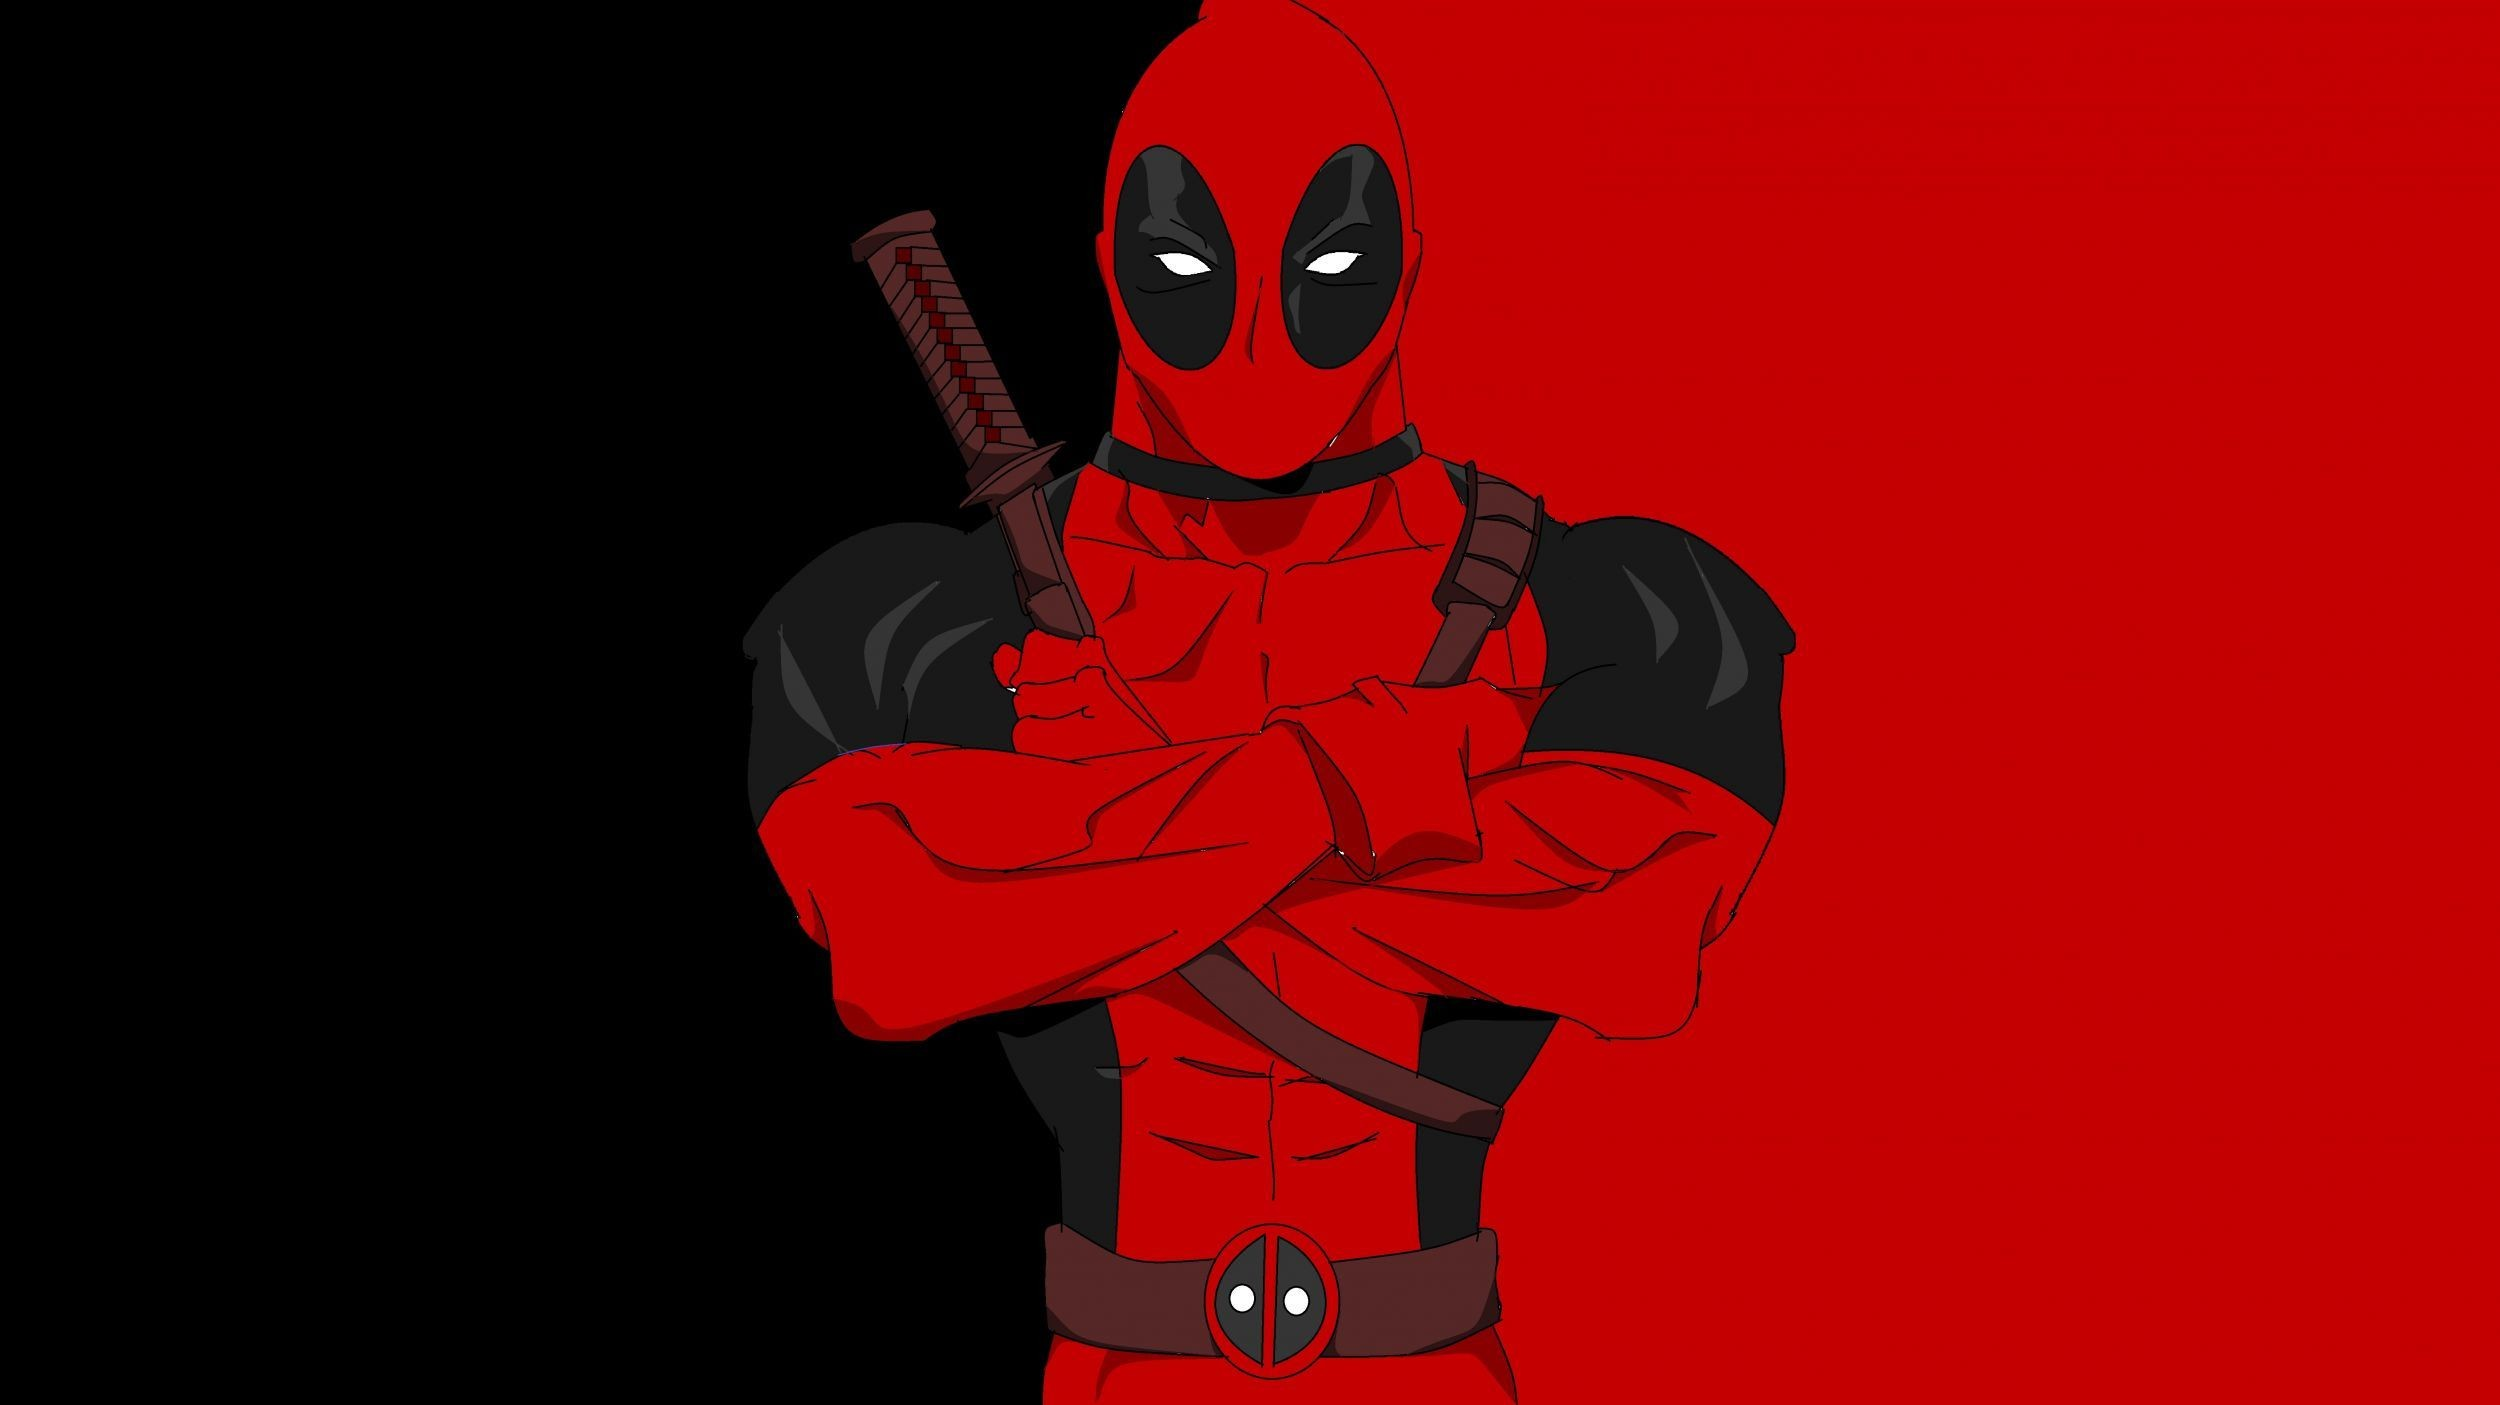 deadpool wallpaper hd 183�� download free wallpapers for